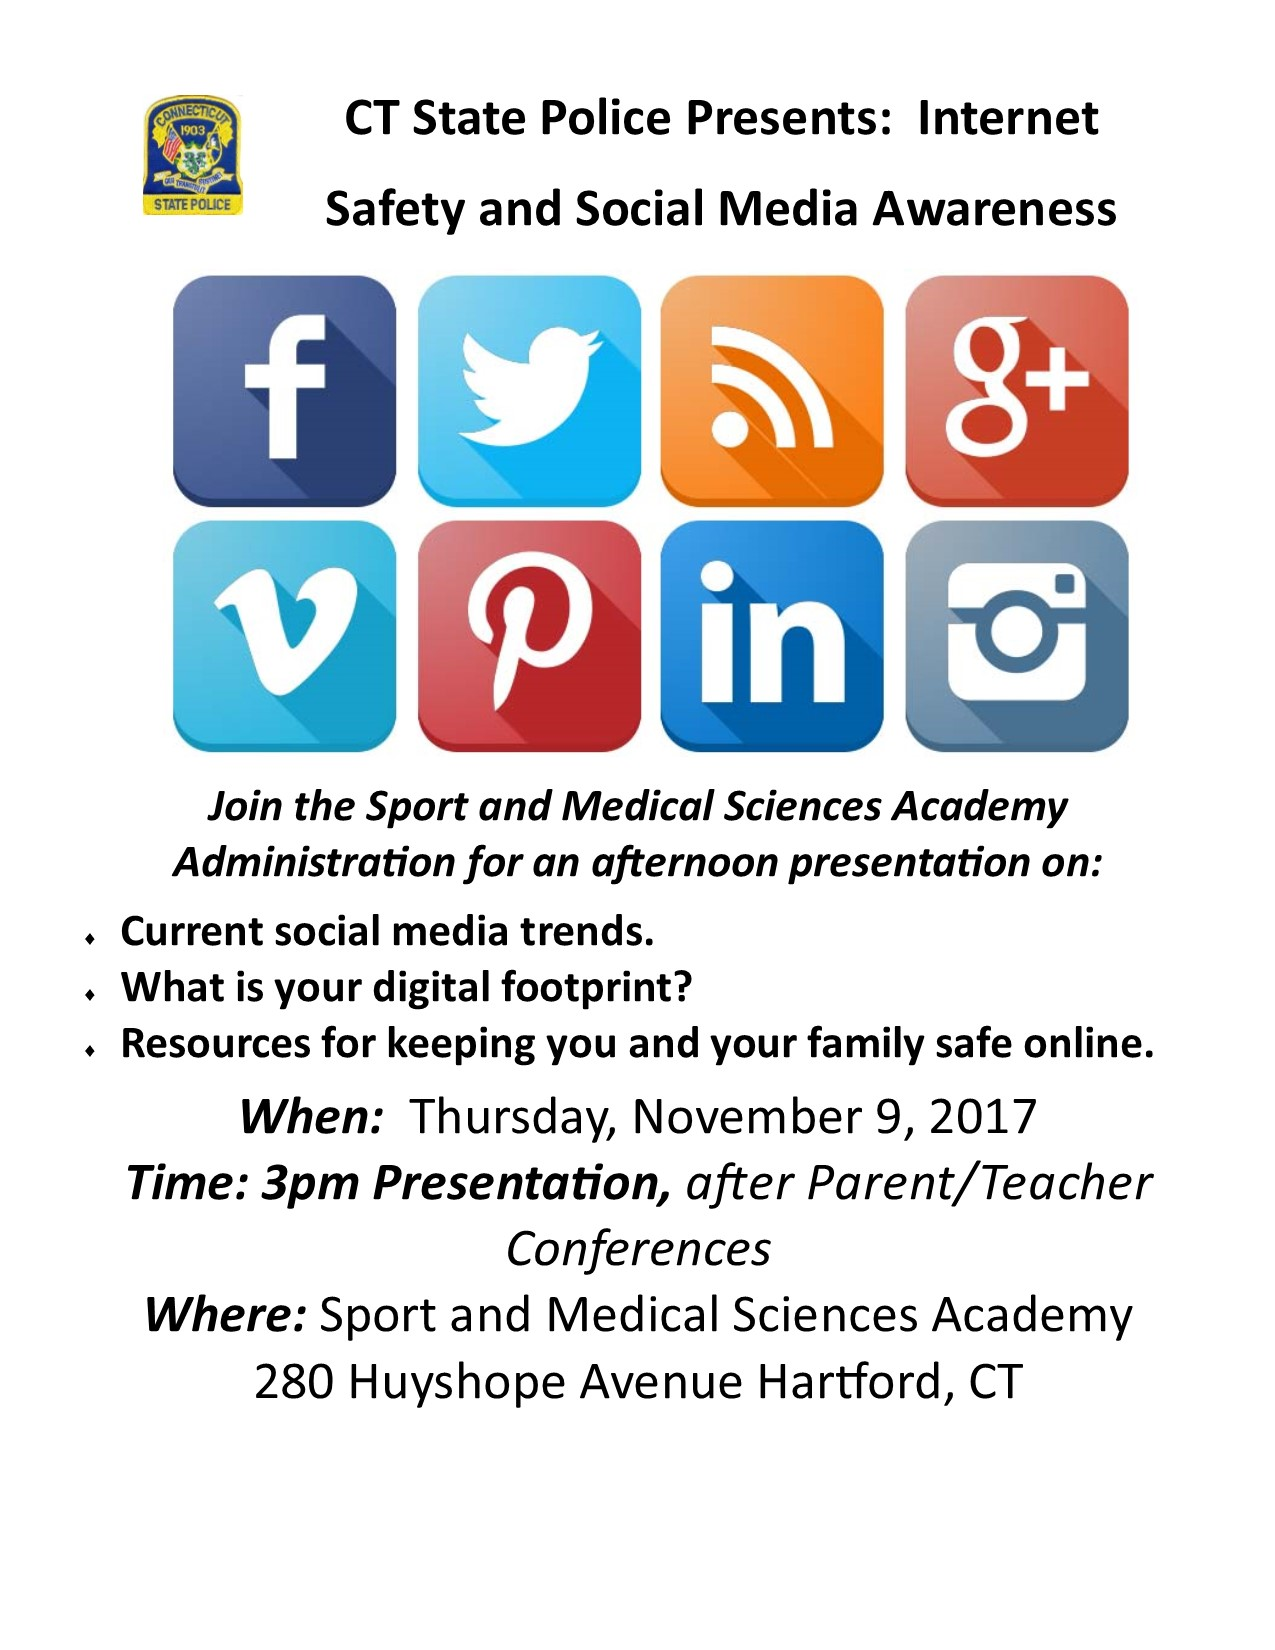 CT State Police Presentation for Parents - Internet Safety